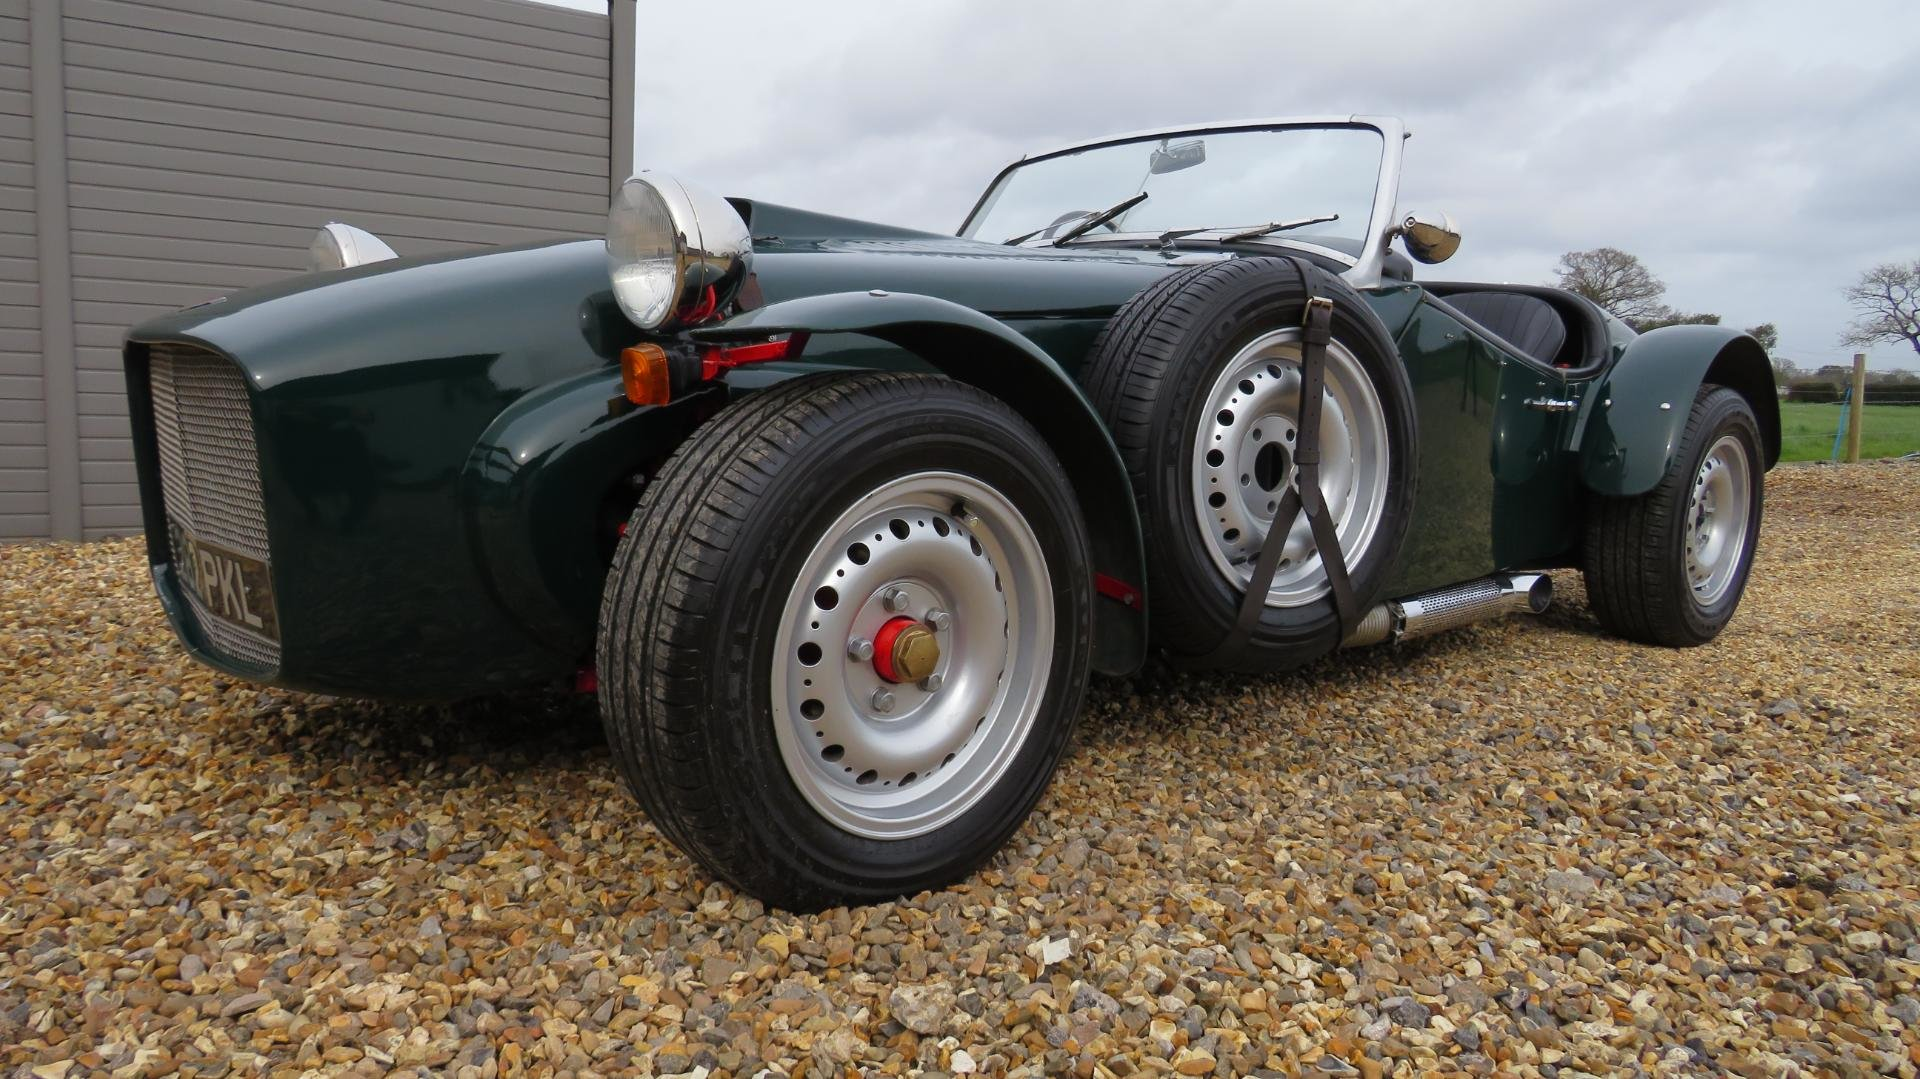 1961 Alvis Special 5.7 V8 For Sale (picture 1 of 1)